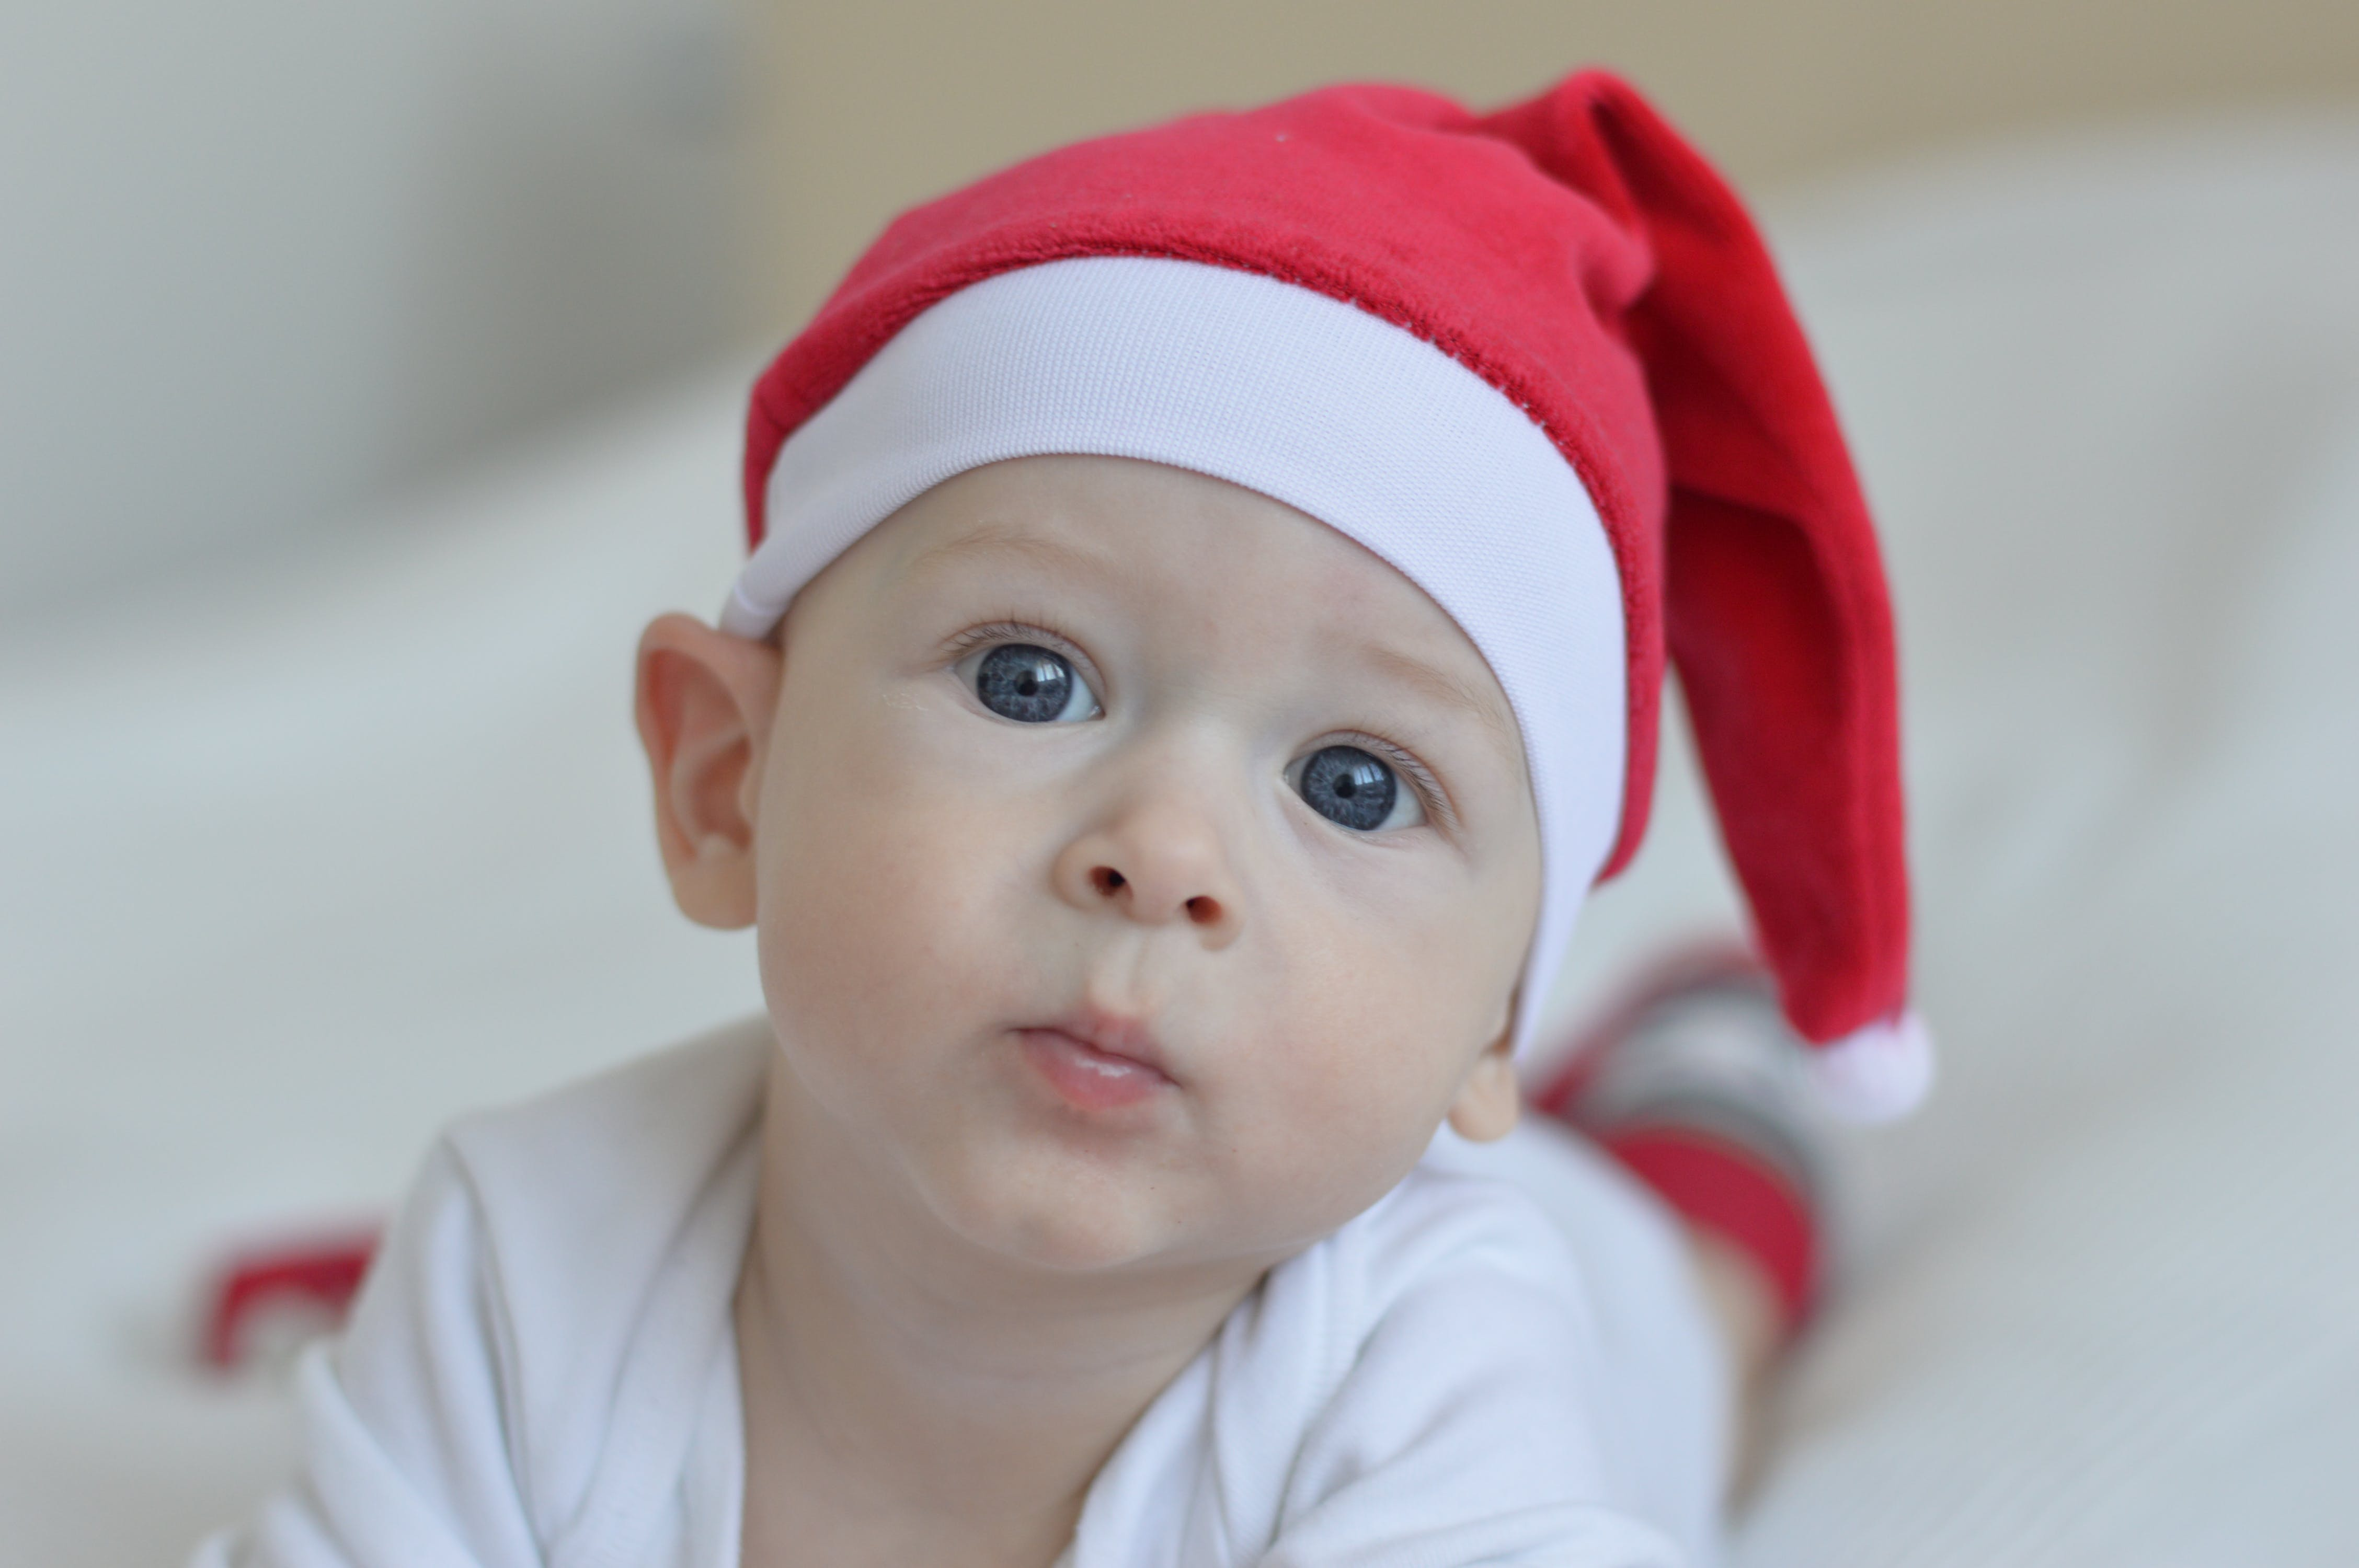 Baby Wearing Red Christmas Hat on White Textile